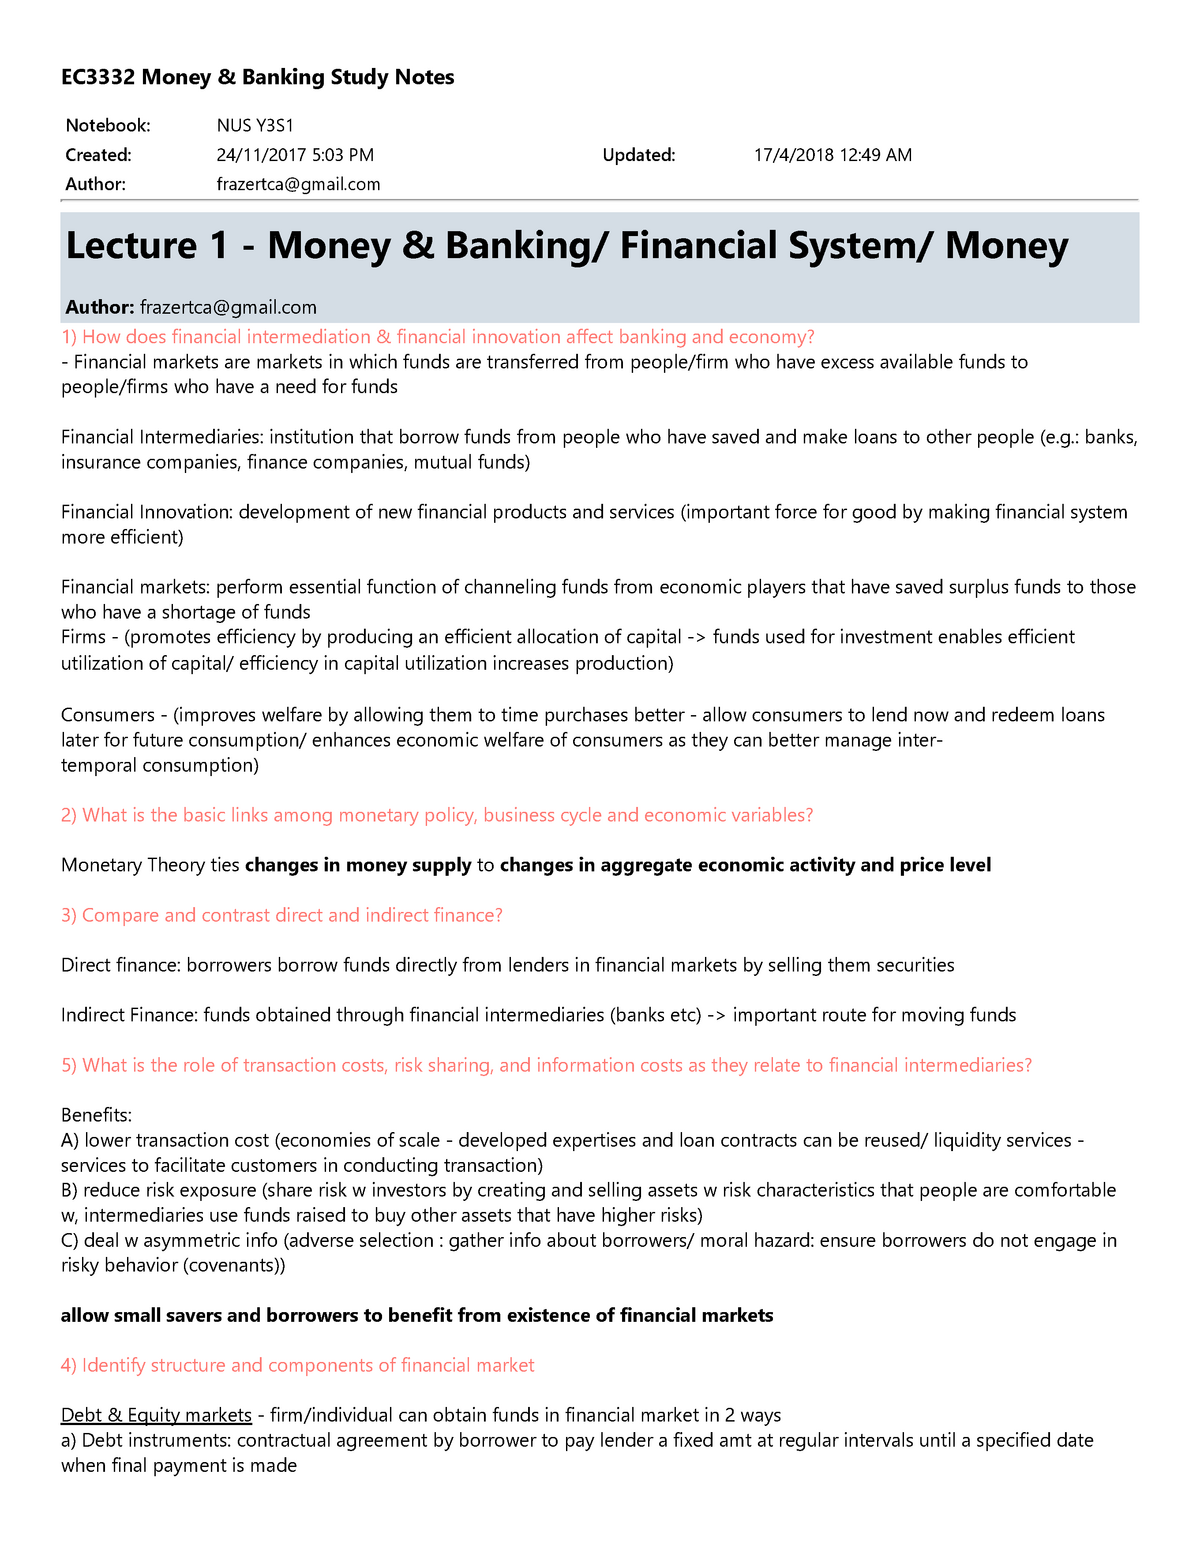 EC3332 Money & Banking Study Notes - StuDocu